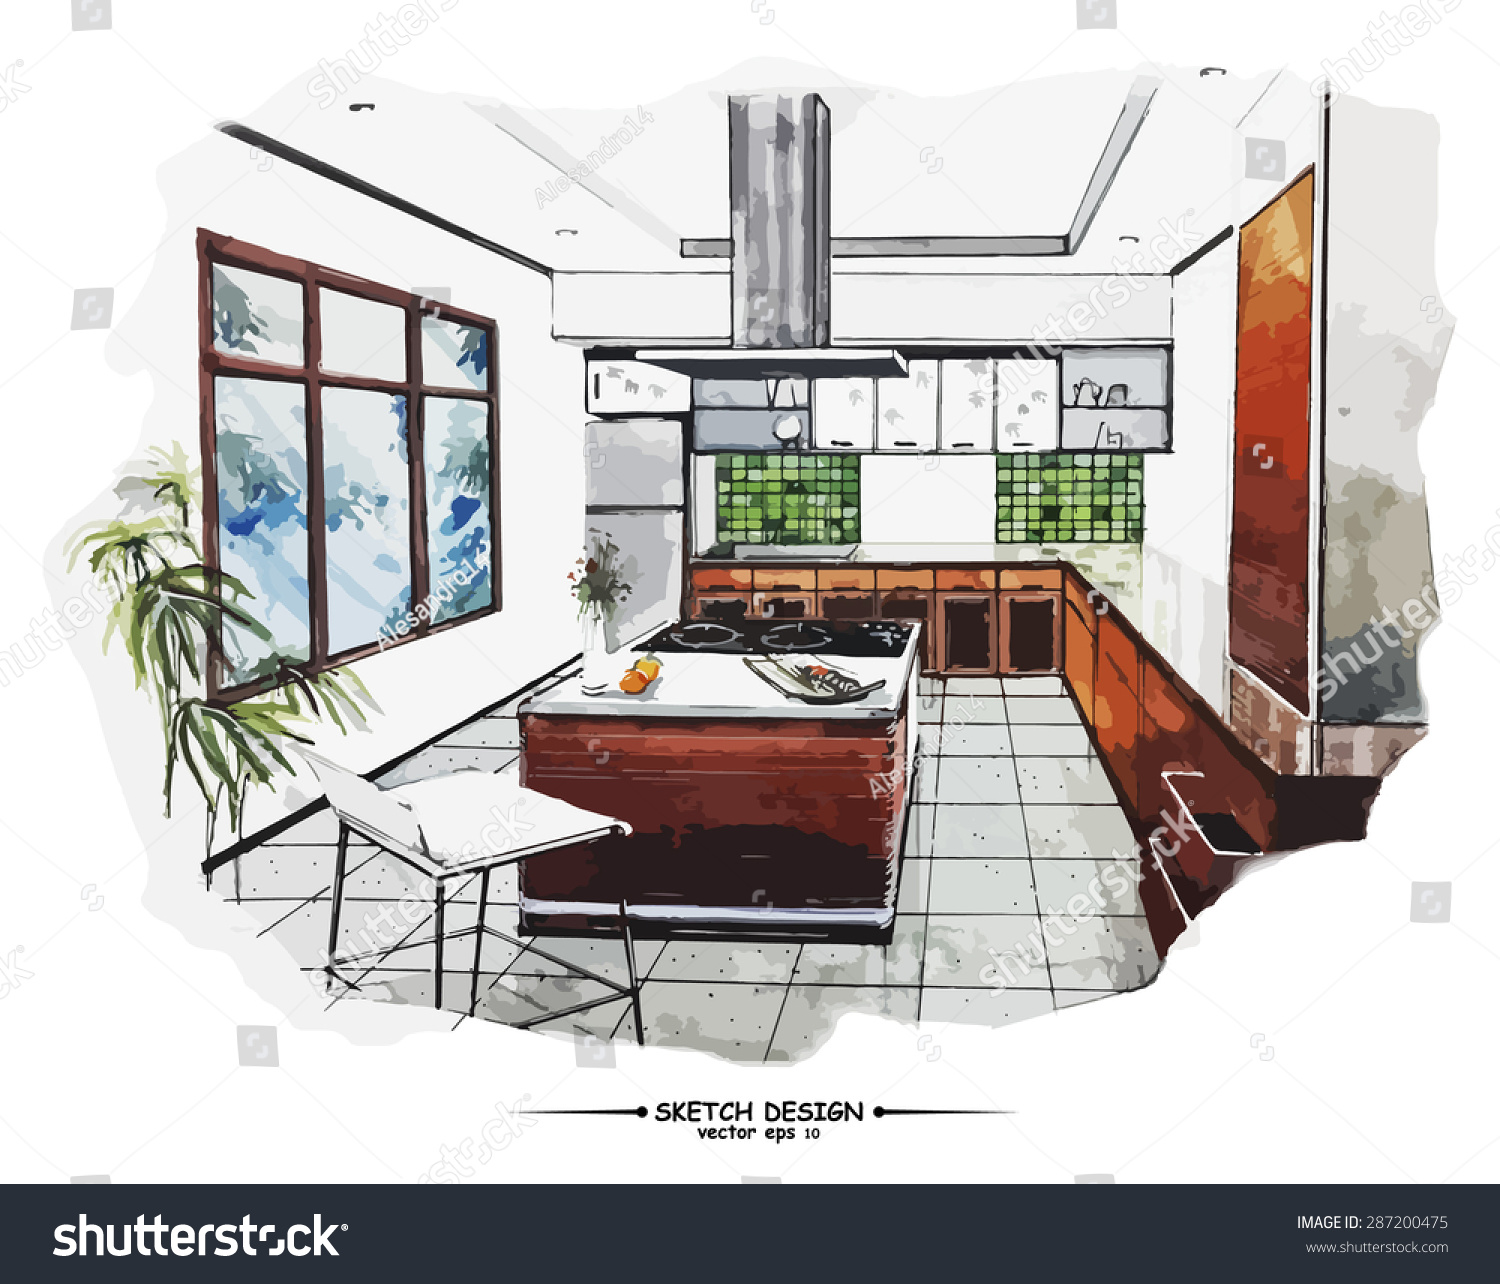 Vector interior sketch design watercolor sketching idea for How to draw interior designs